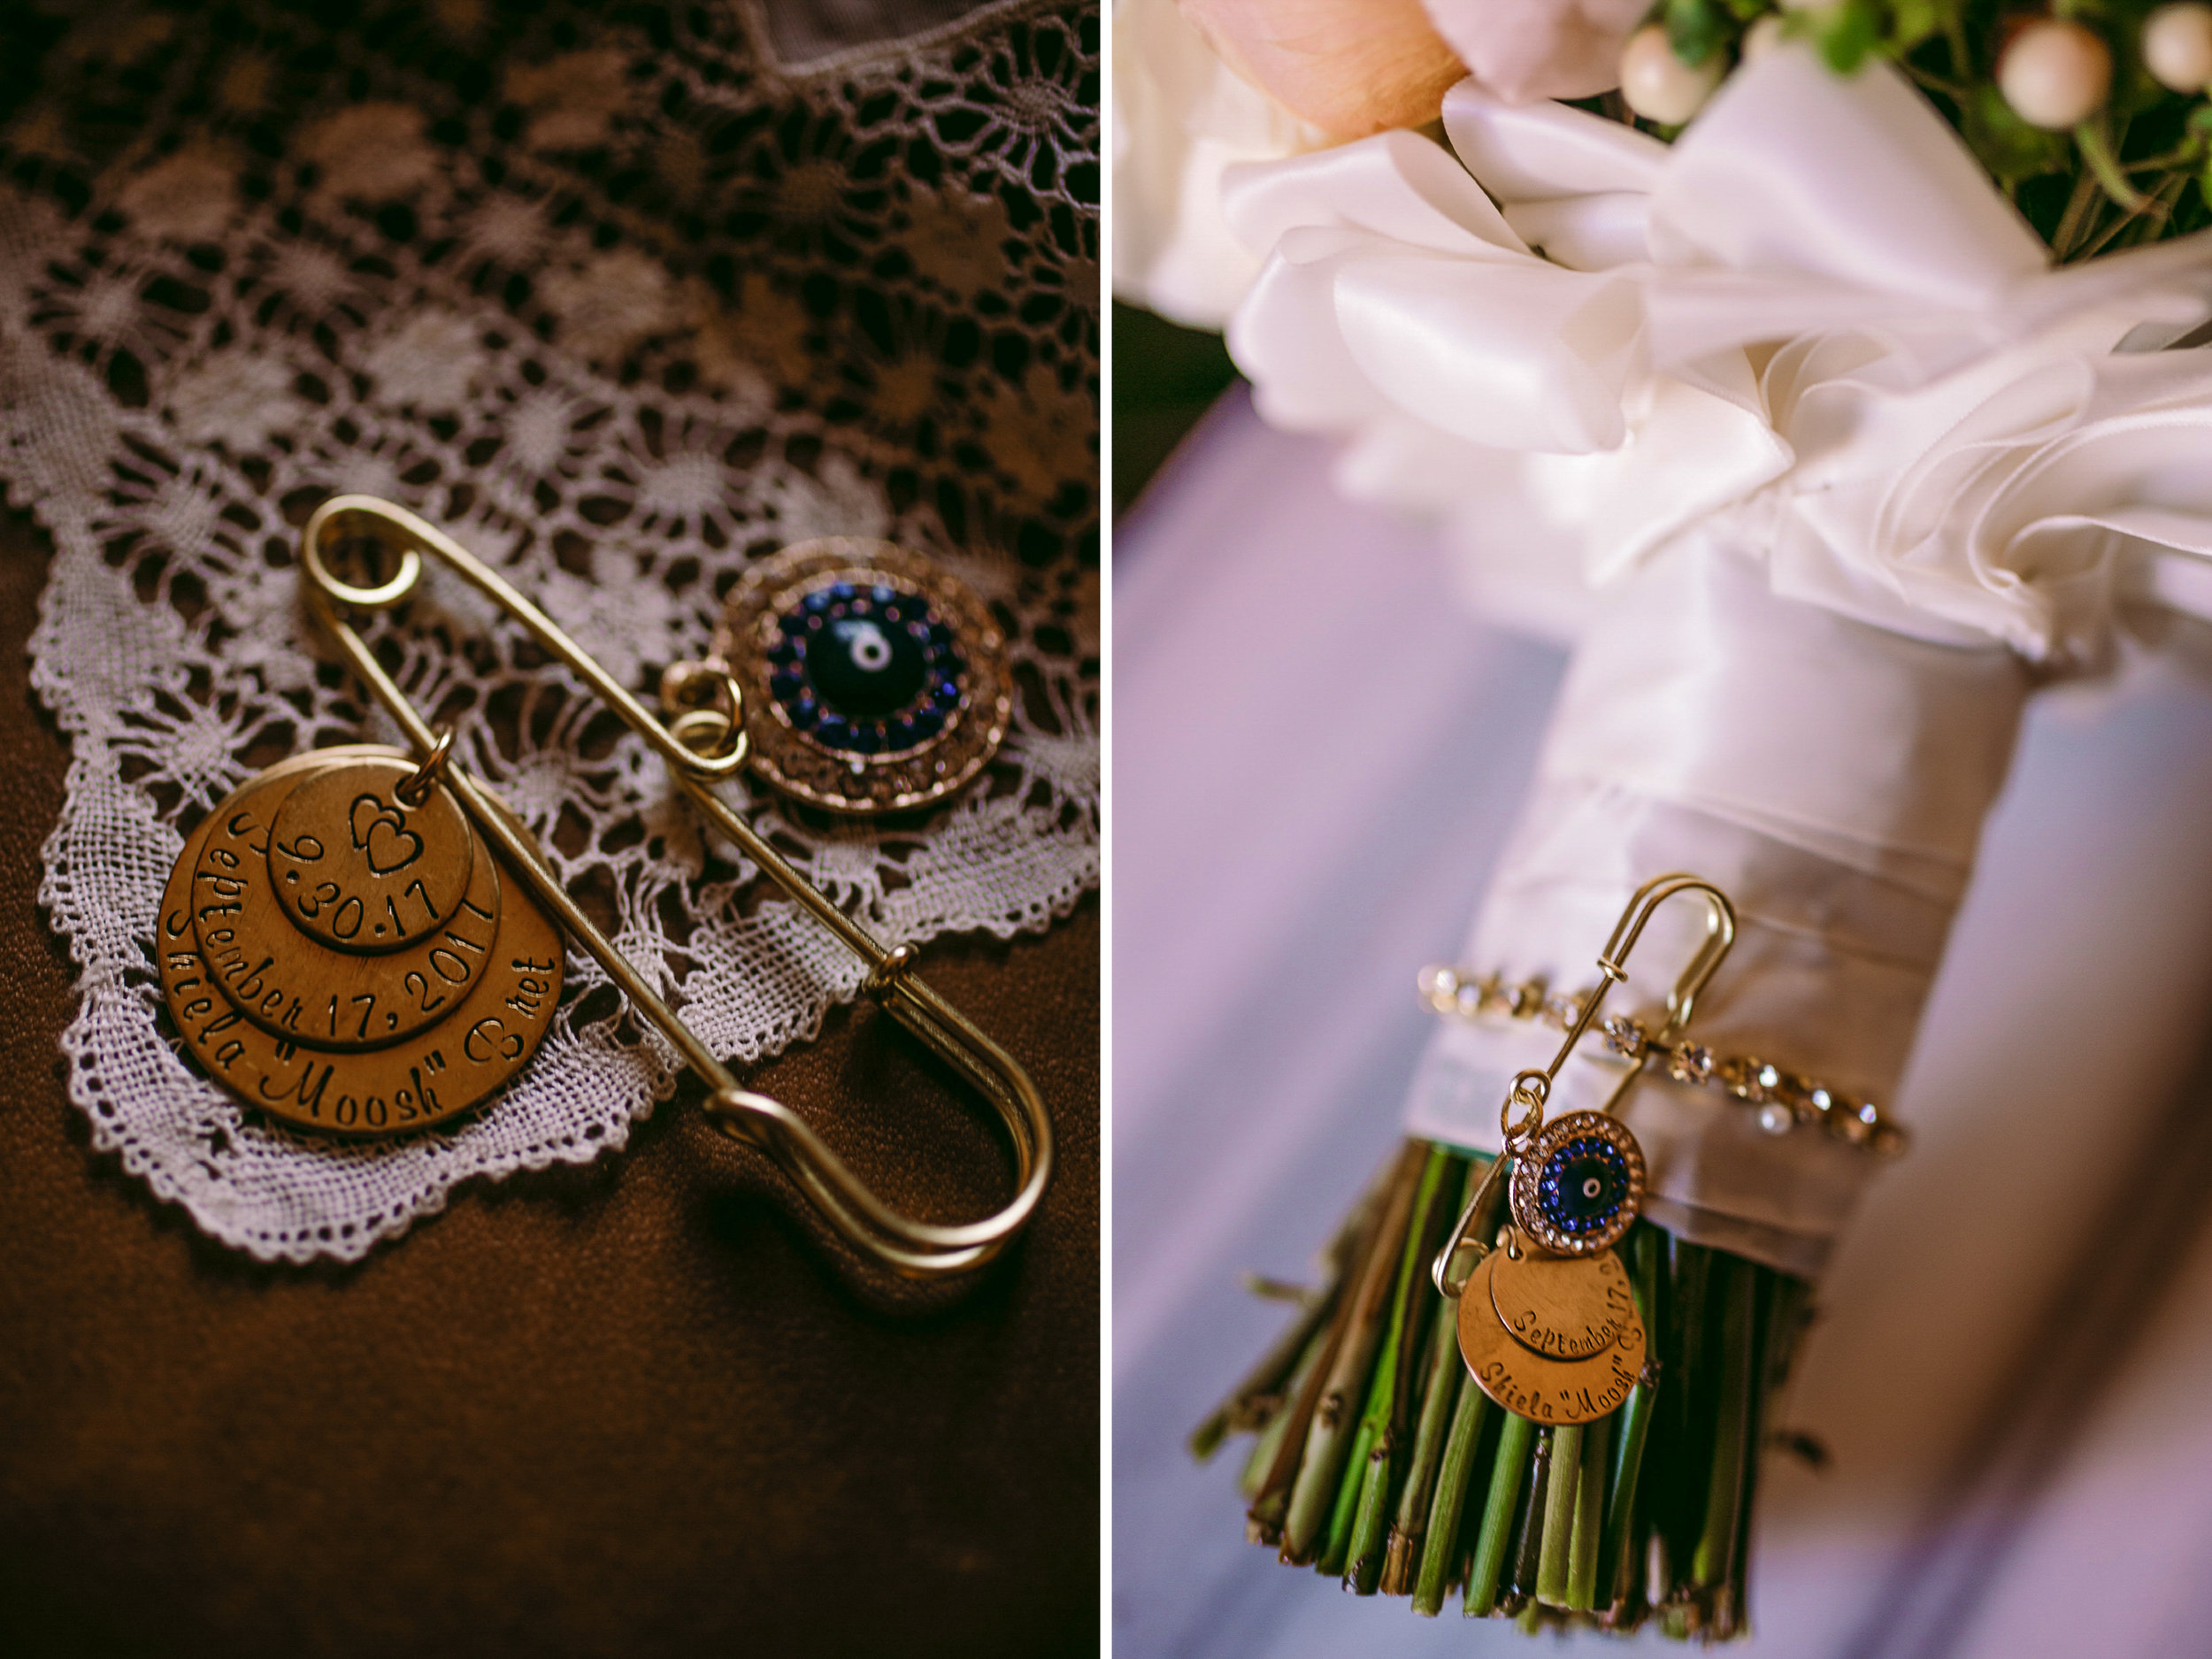 san diego wedding   photographer | jewelry with words engraved on it attached to a pin